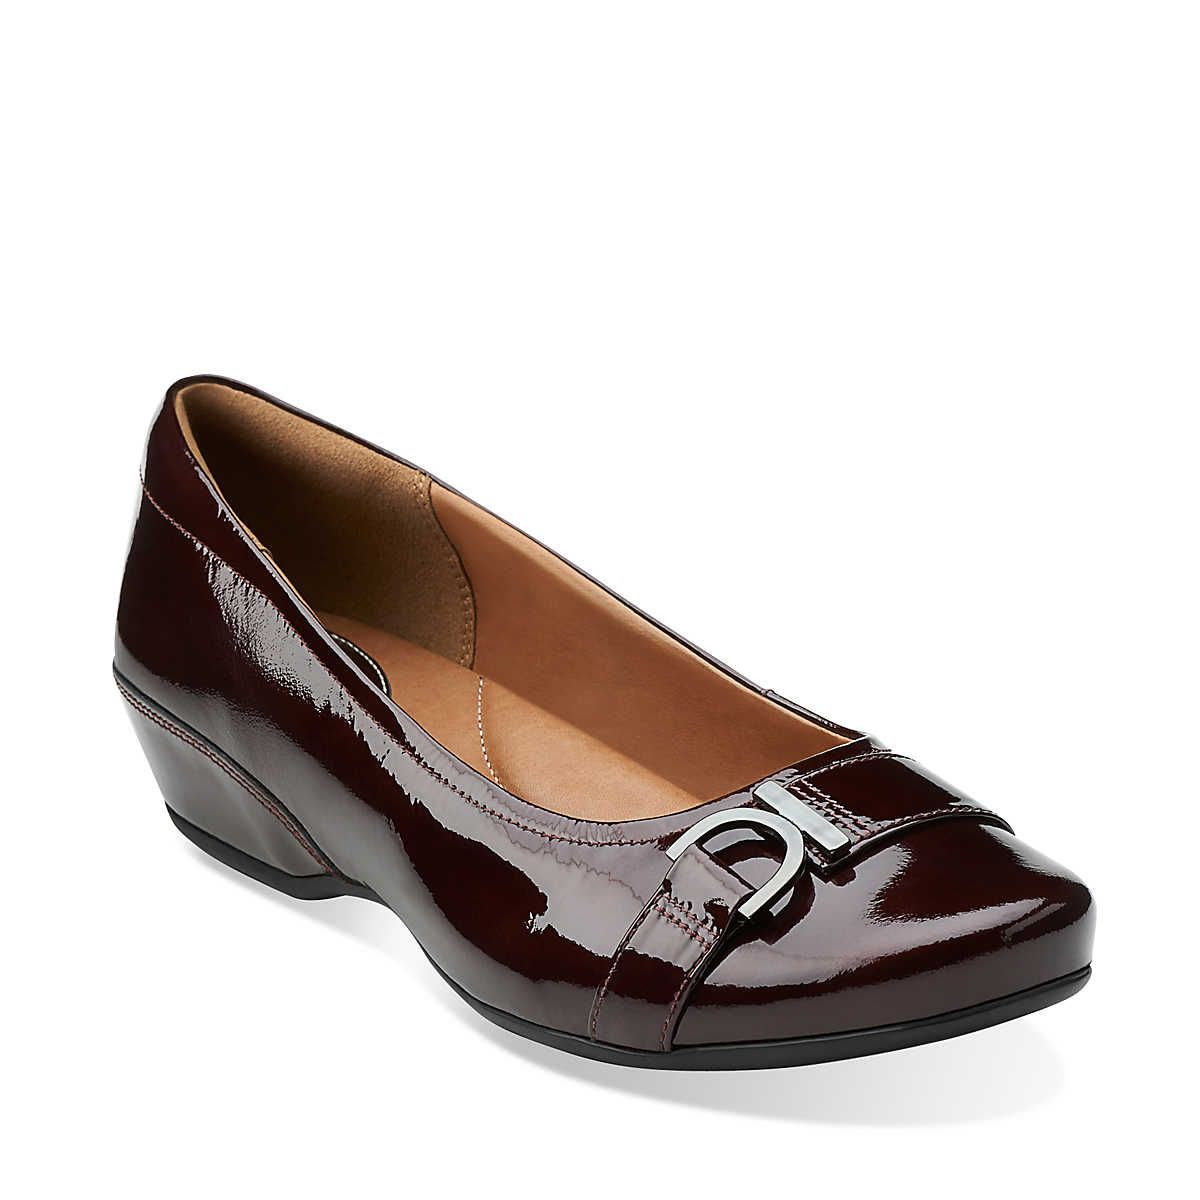 Womens Shoes Clarks Concert Band Burgundy Patent